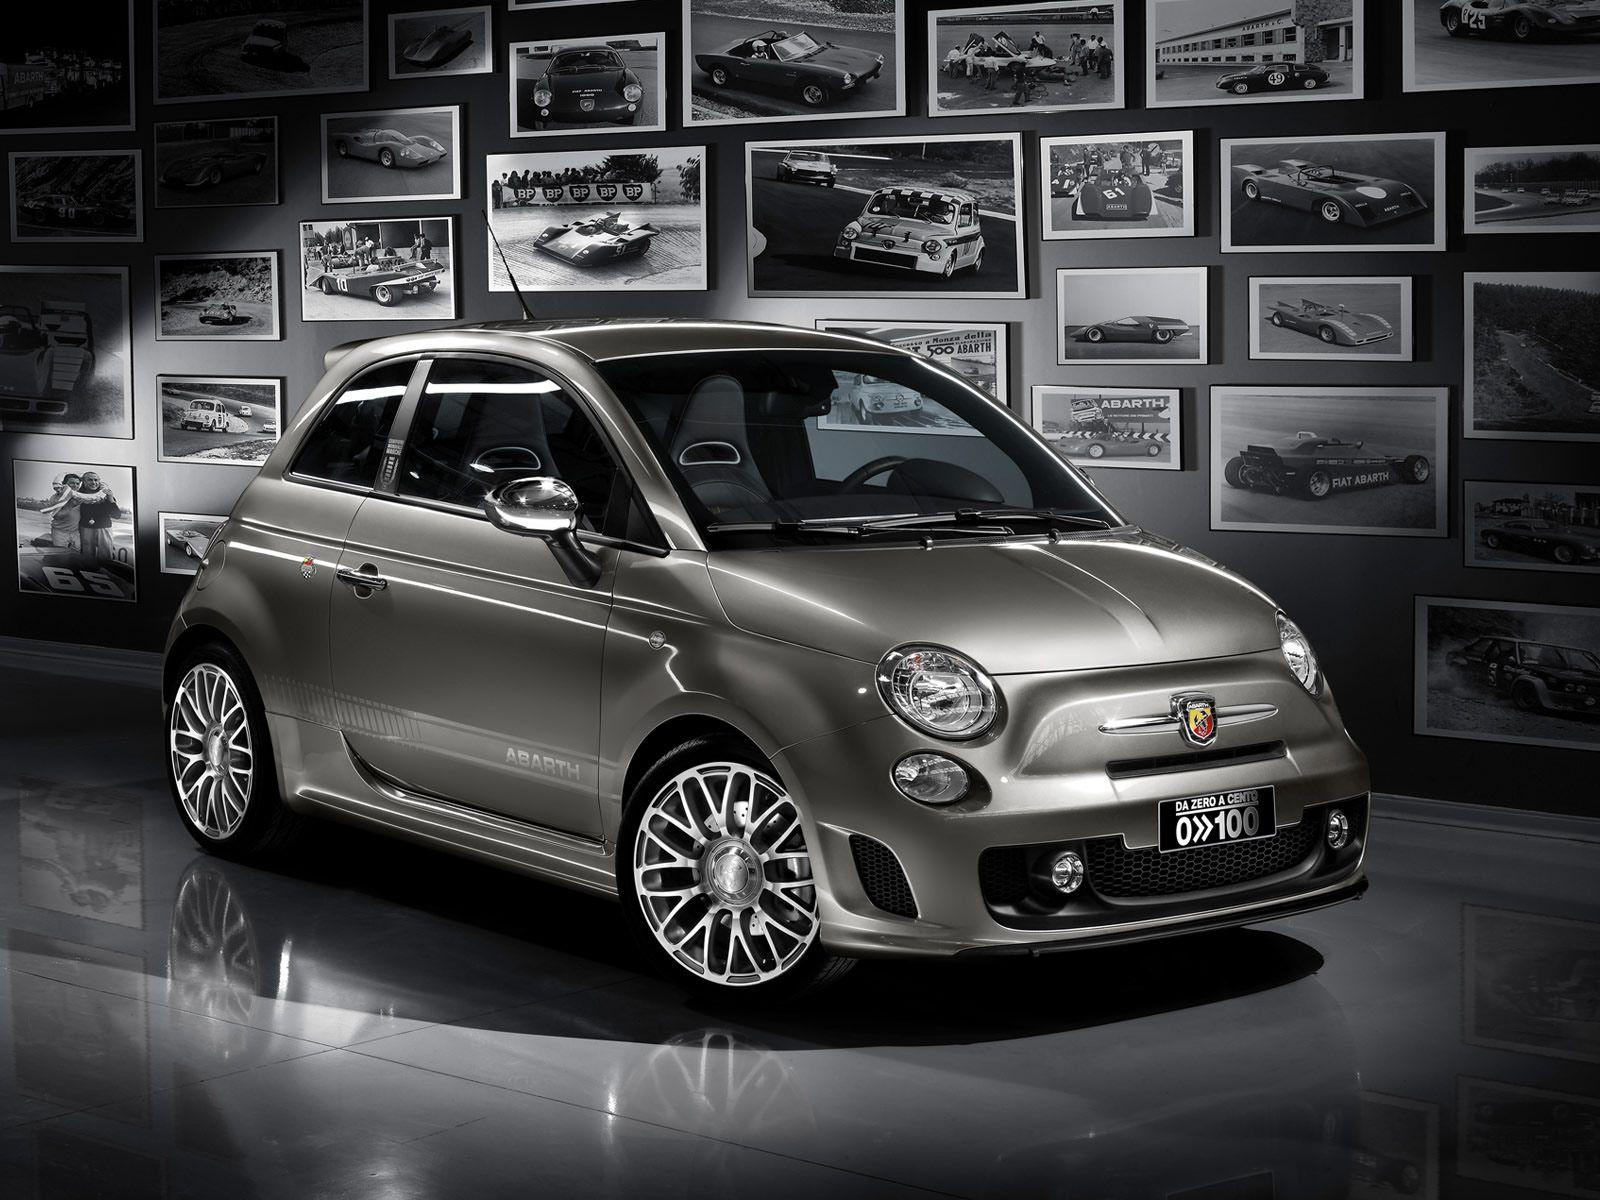 Fiat 500 Wallpapers 18 - 1600 X 1200 | stmed.net